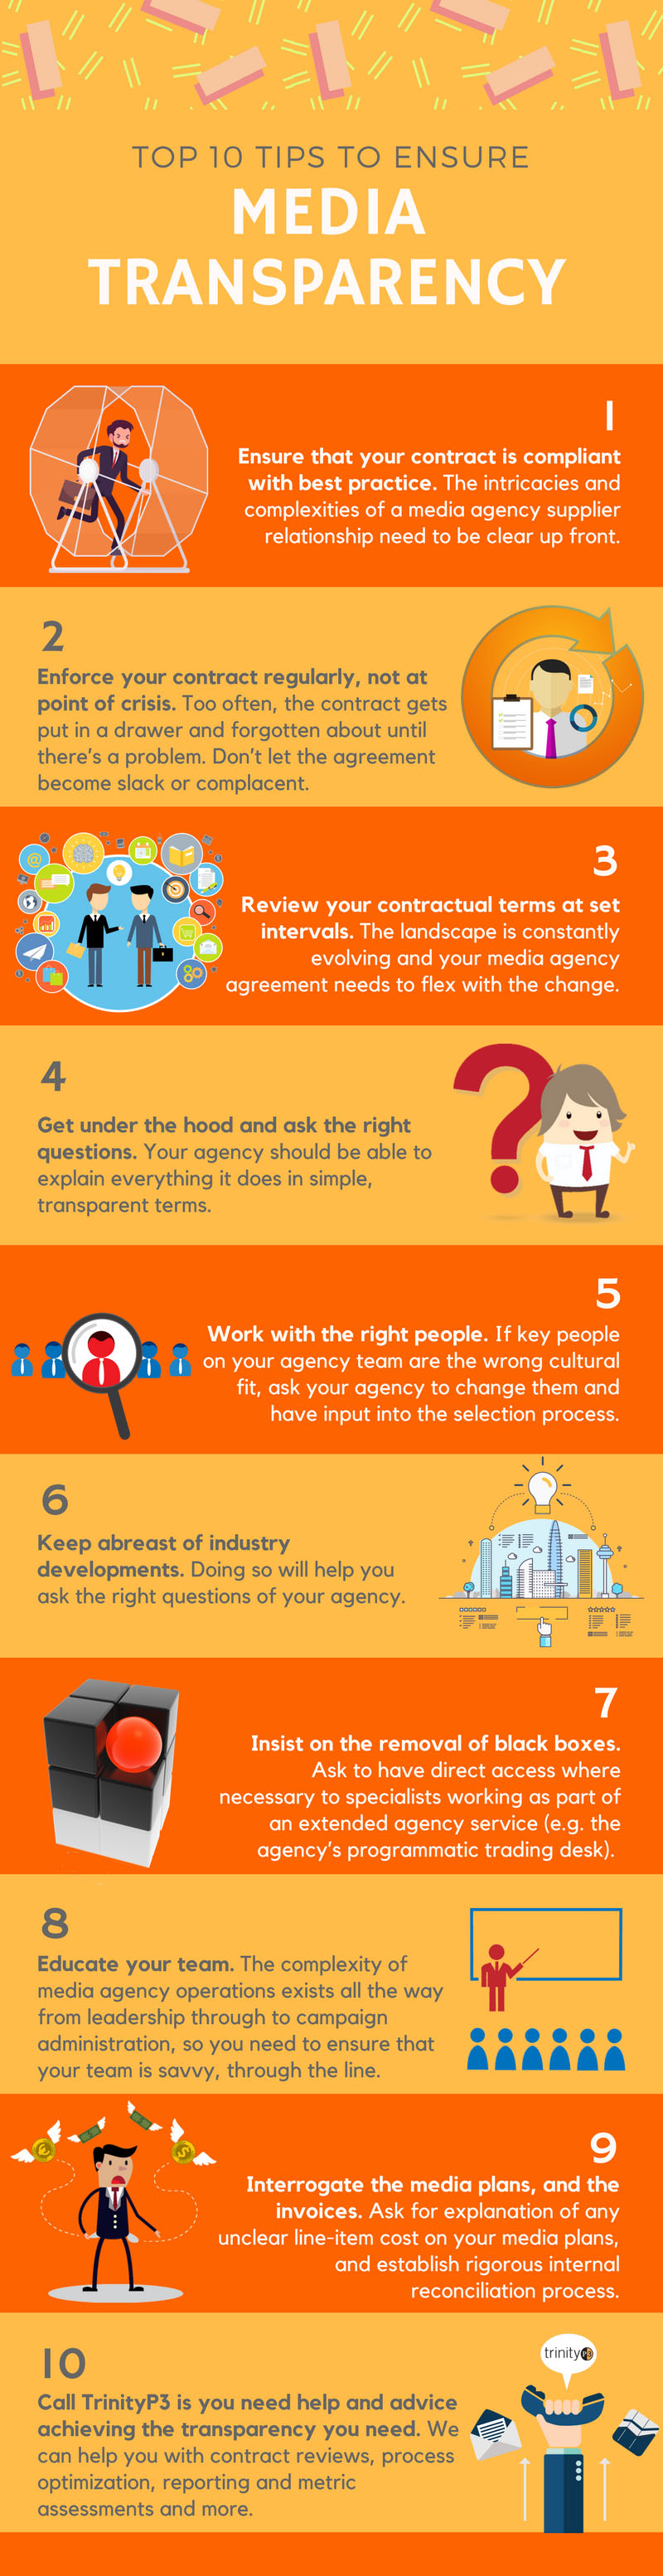 Top 10 tips to ensure media transparency